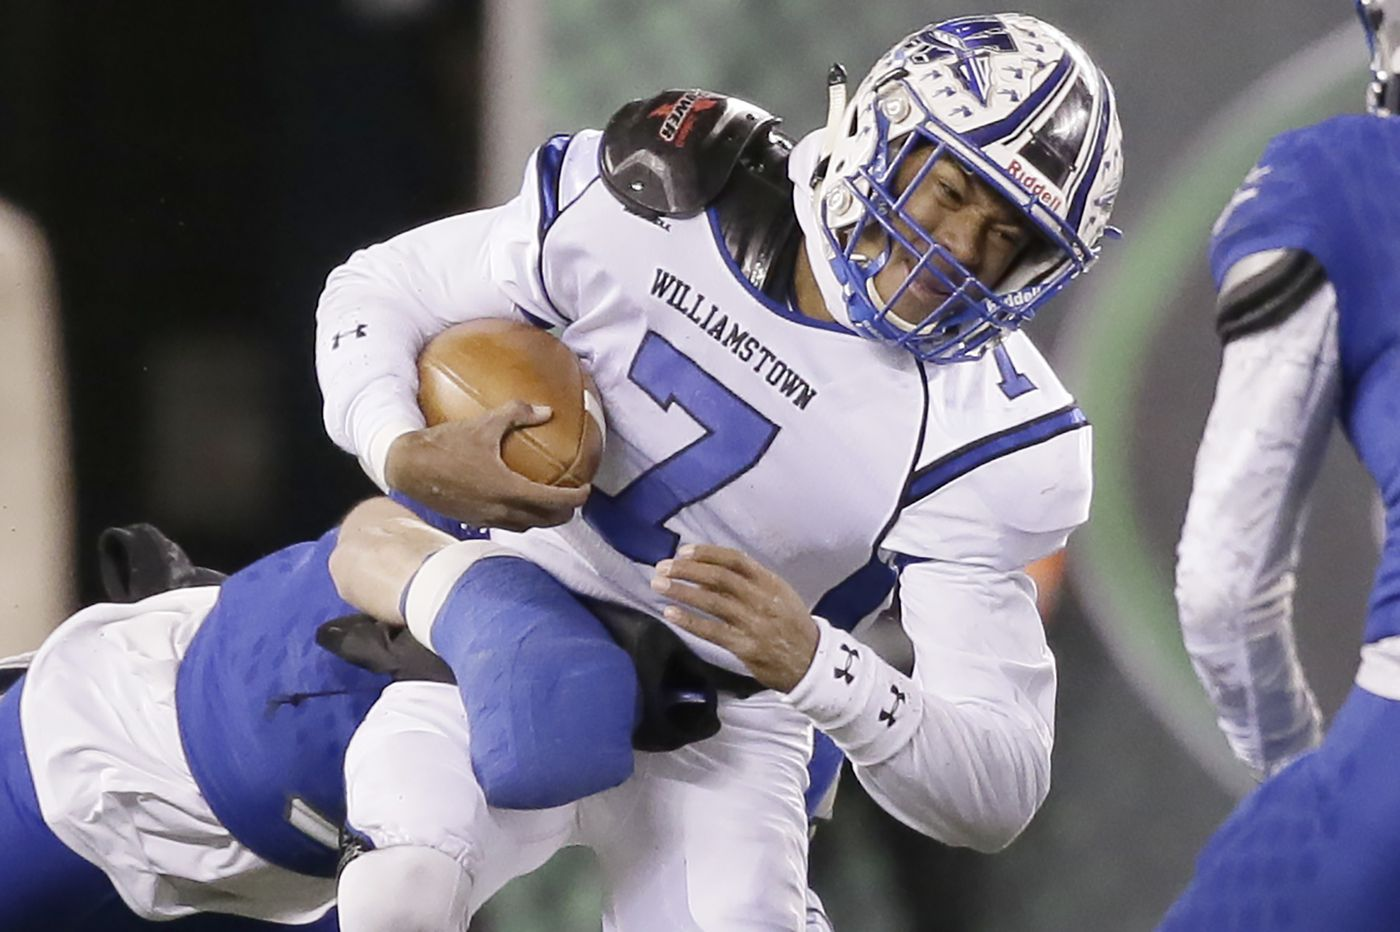 Williamstown's J.C. Collins learns harsh side of recruiting process